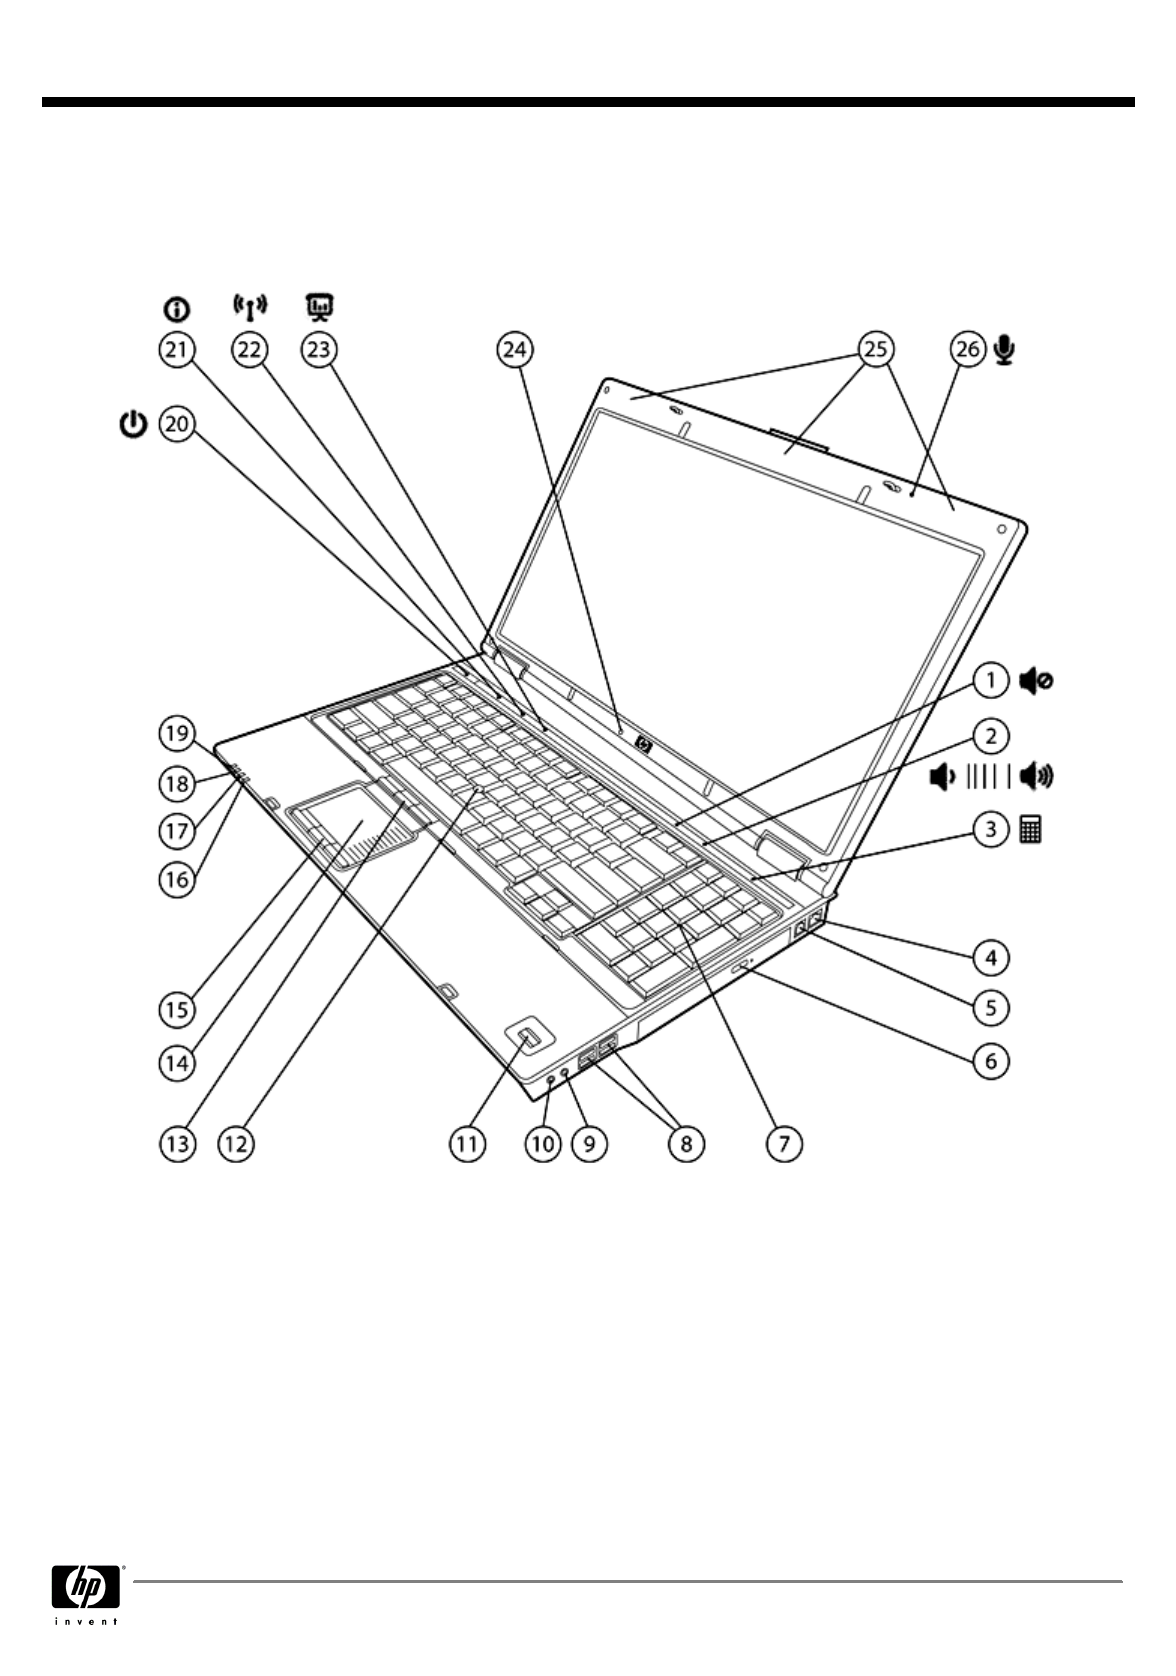 HP (Hewlett-Packard) Laptop 8710p User Guide